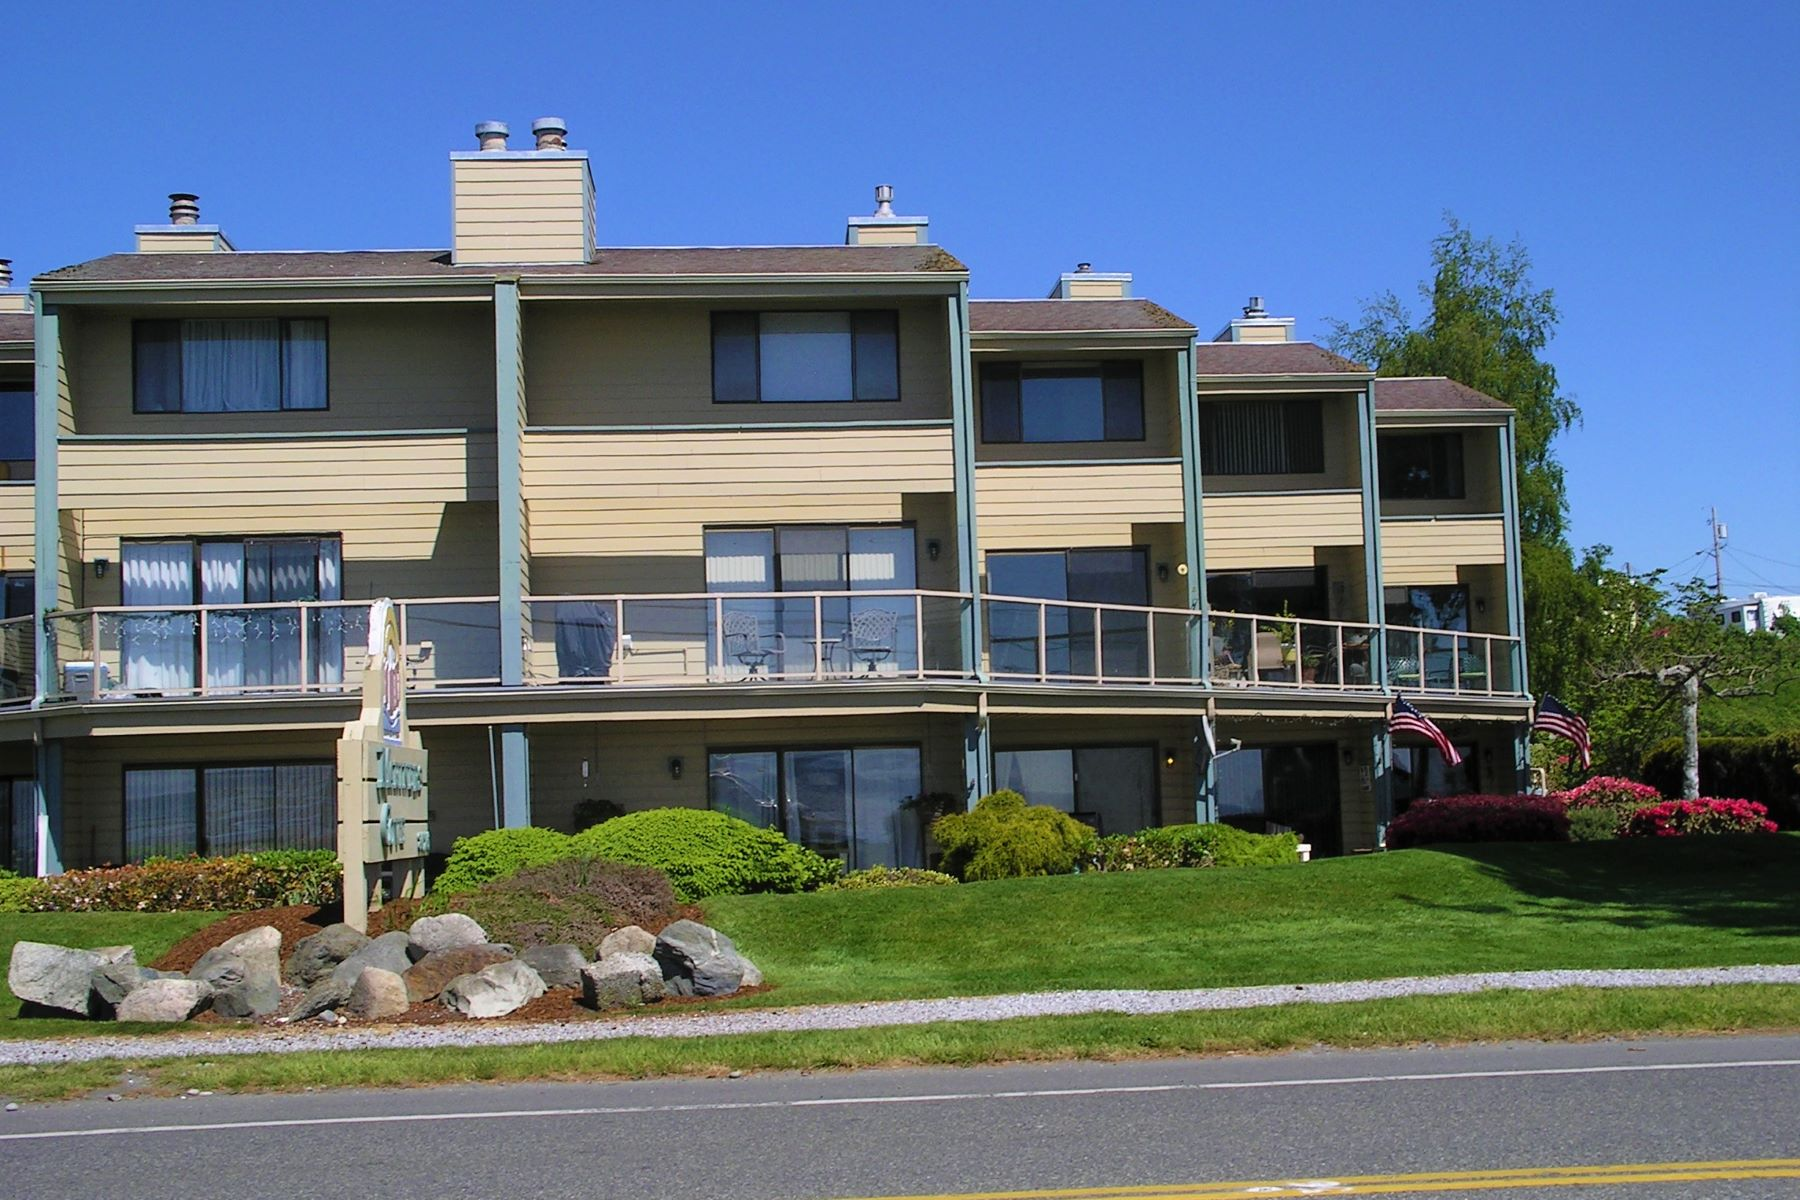 Condominiums for Sale at Ocean Bay View 8026 Birch Bay Dr #237 Blaine, Washington 98230 United States